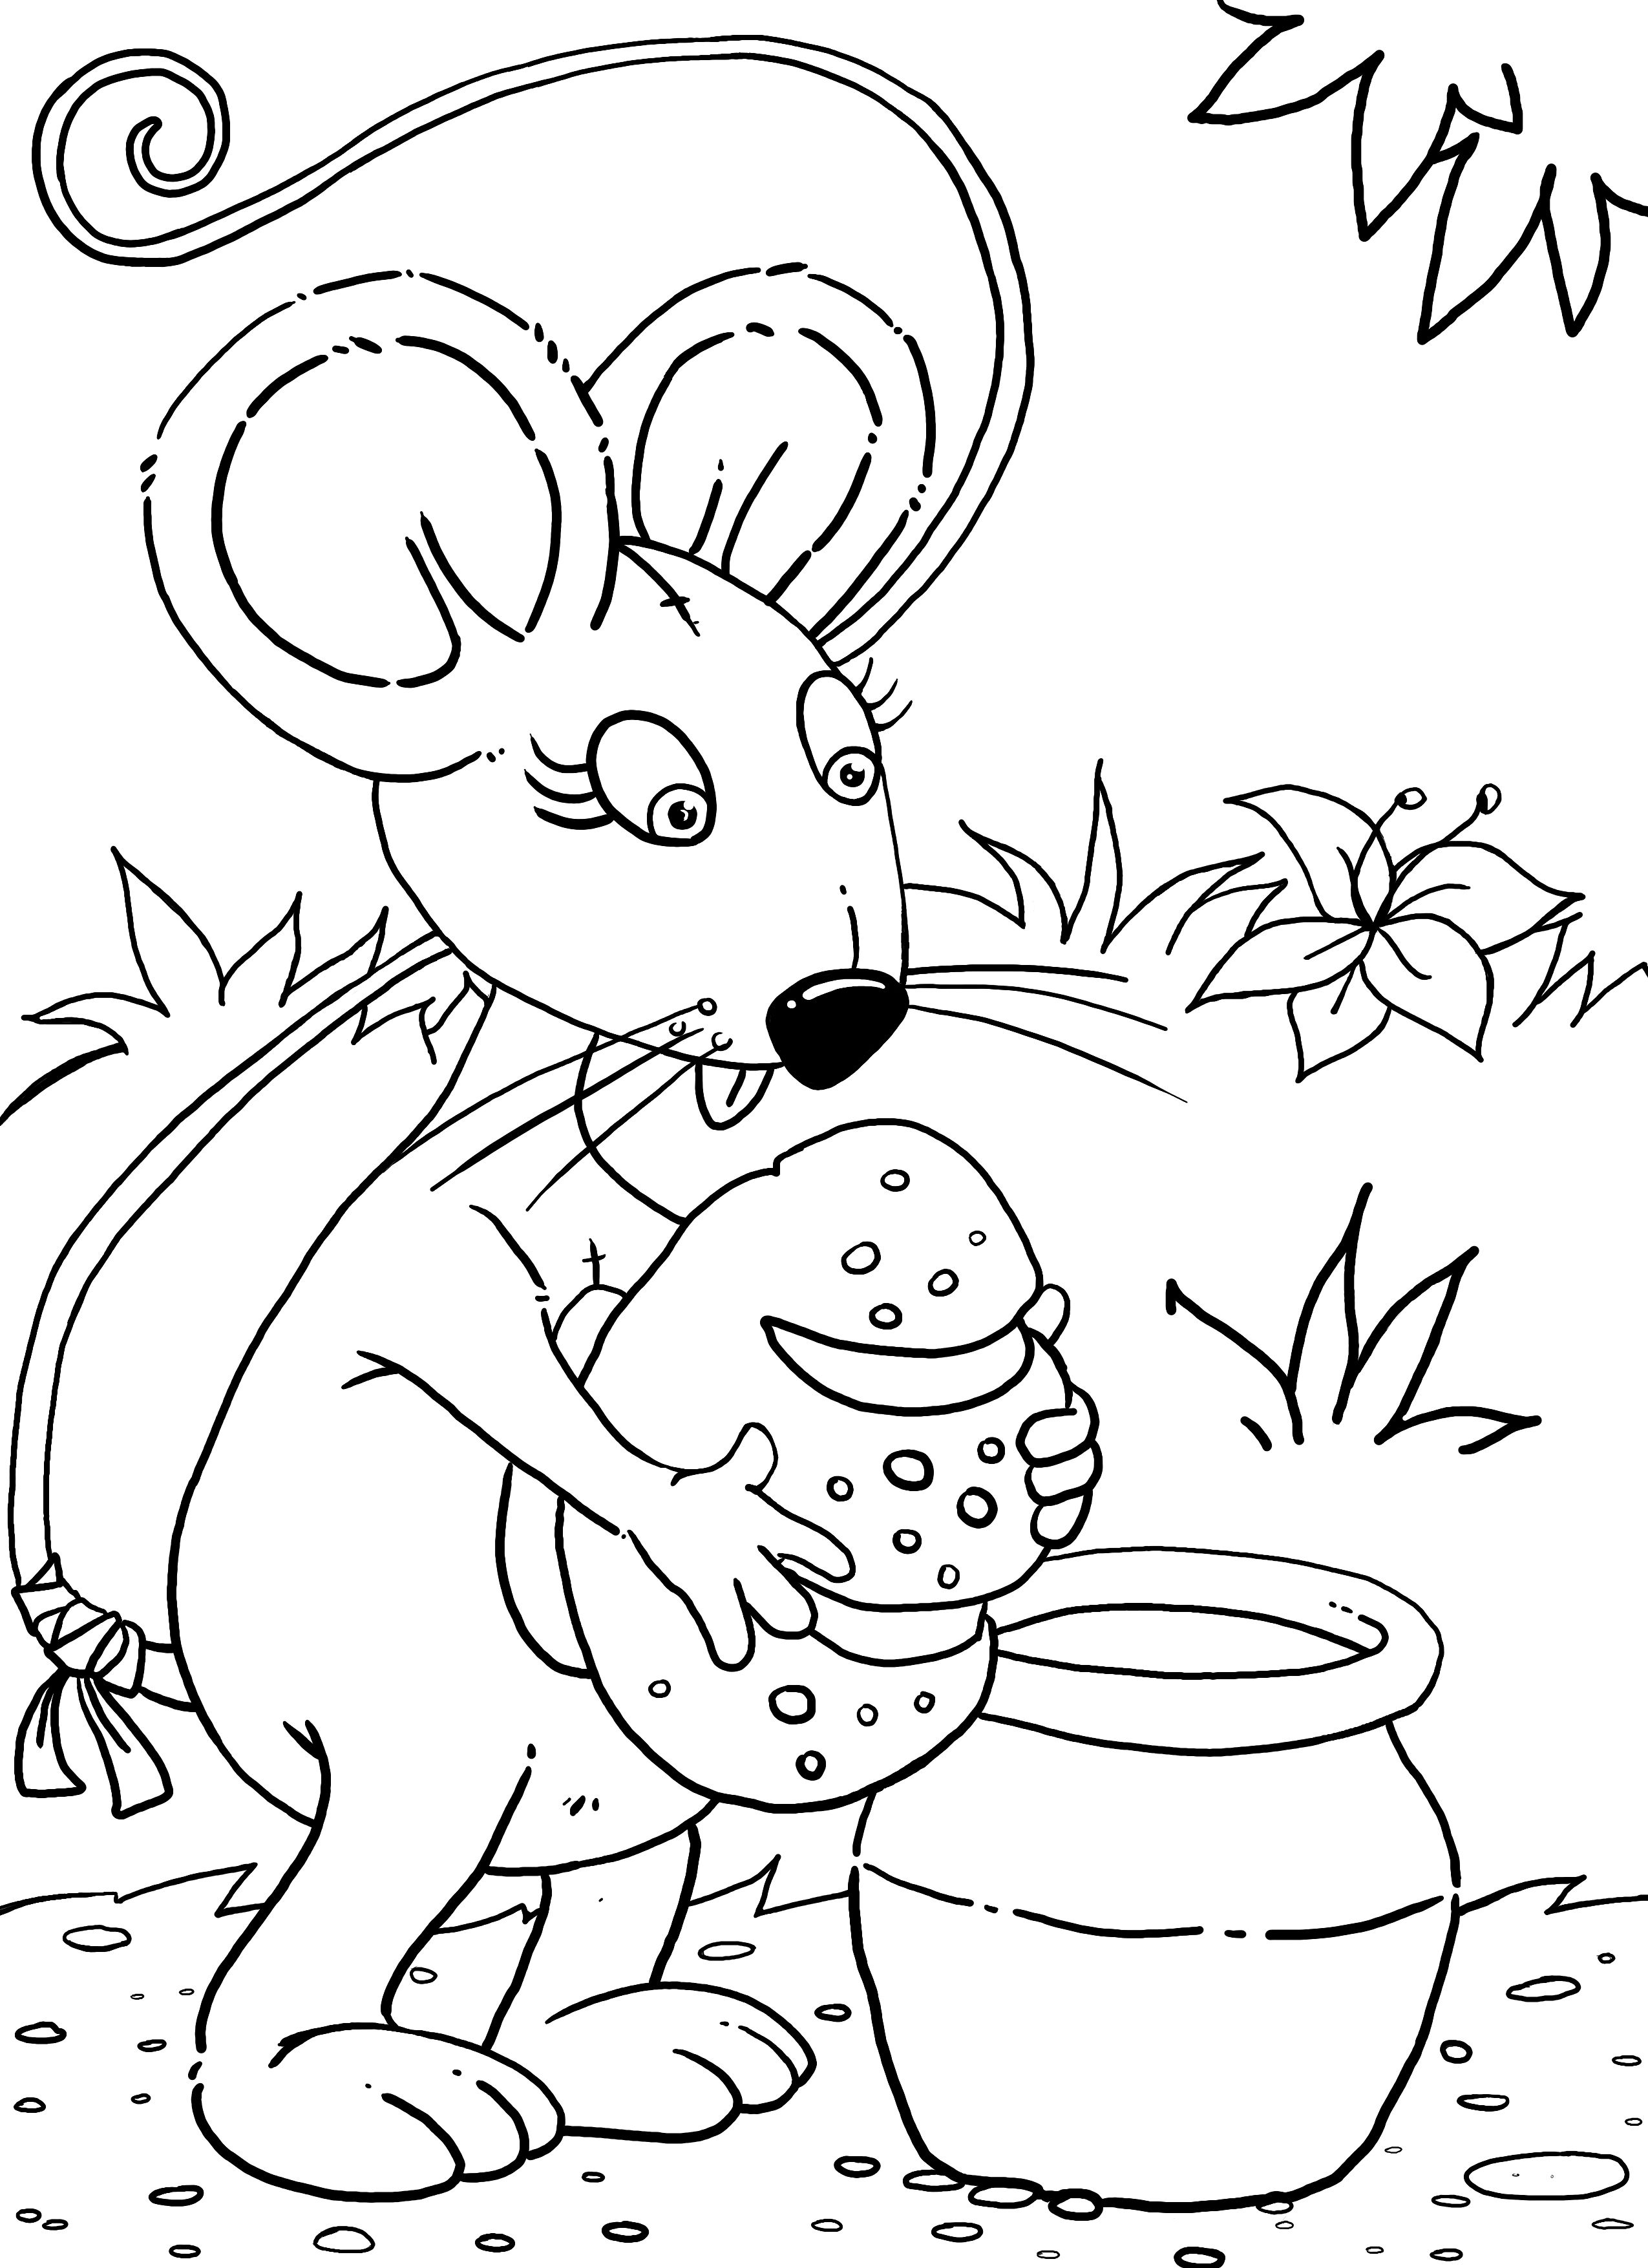 Jack and annie coloring pages ~ Jack And Annie Magic Tree House Coloring Pages Coloring Pages